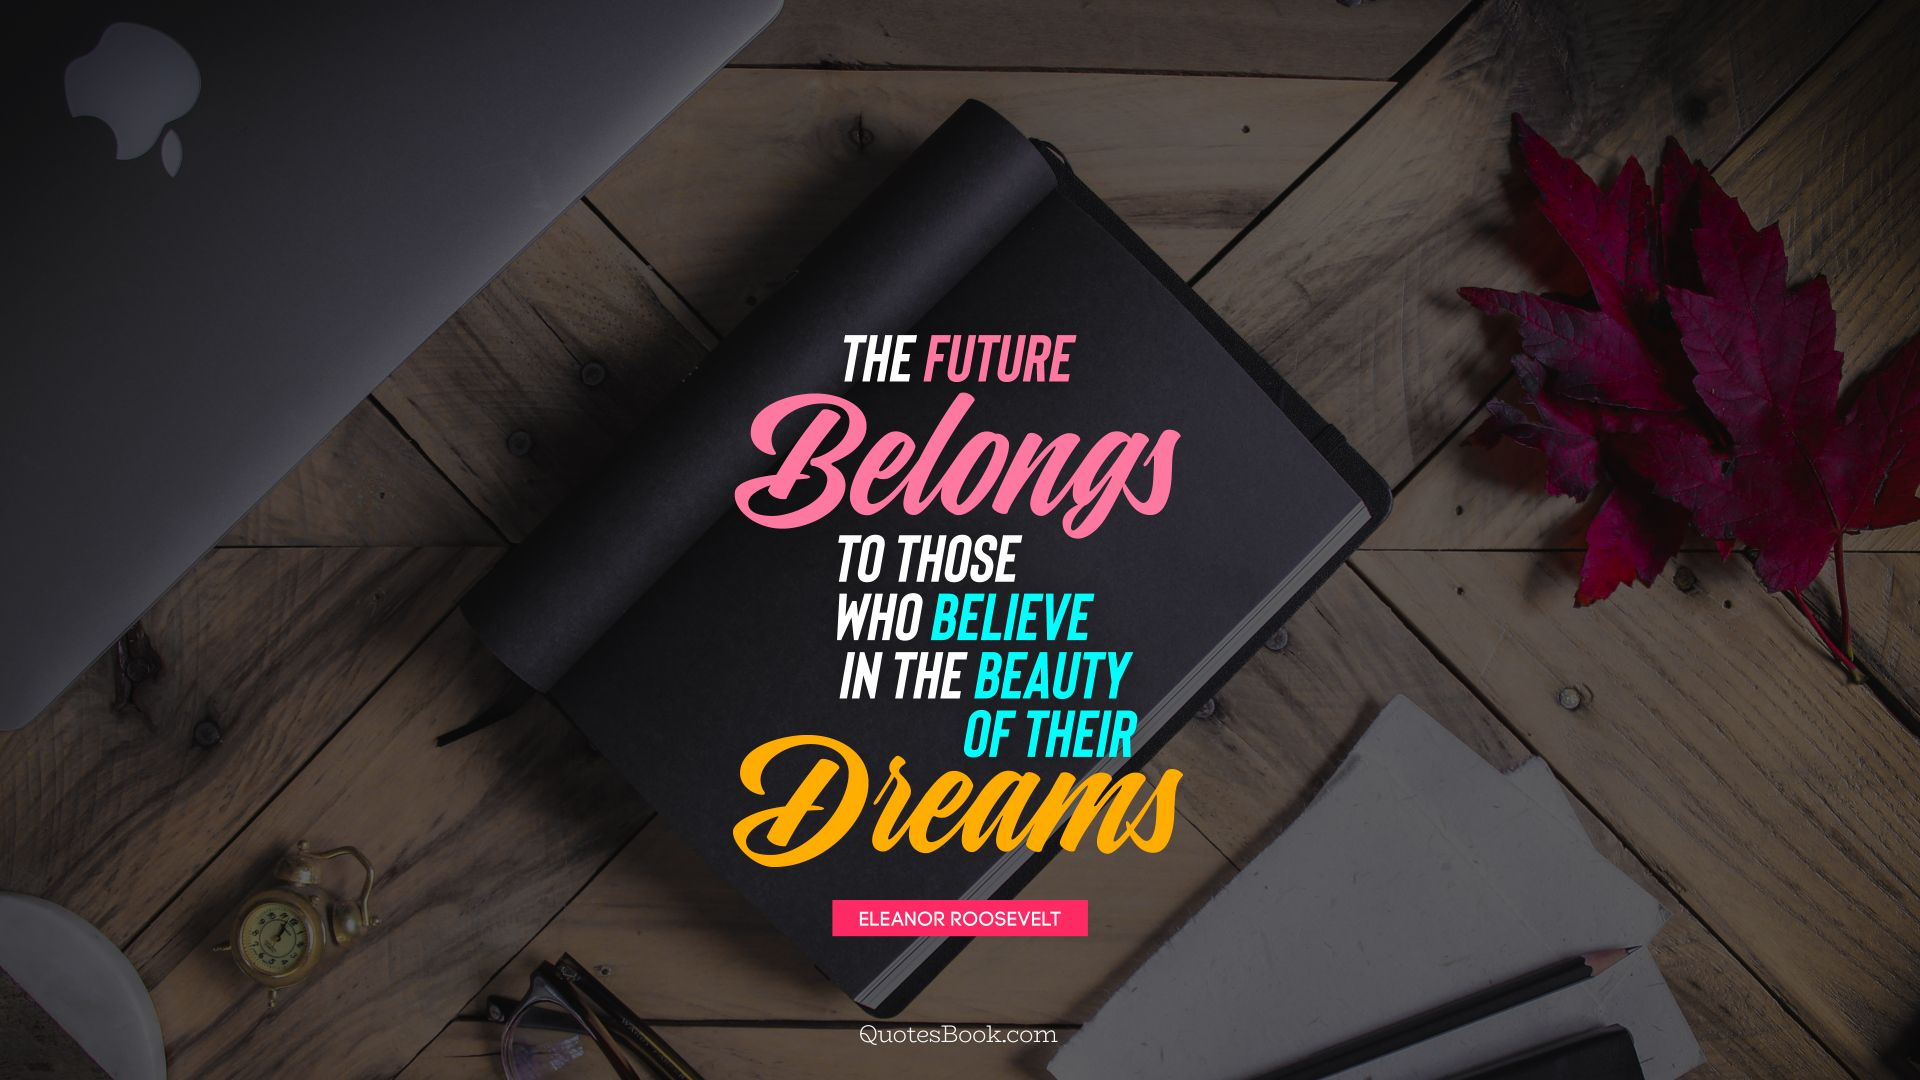 The future belongs to those who believe in the beauty of their dreams. - Quote by Eleanor Roosevelt